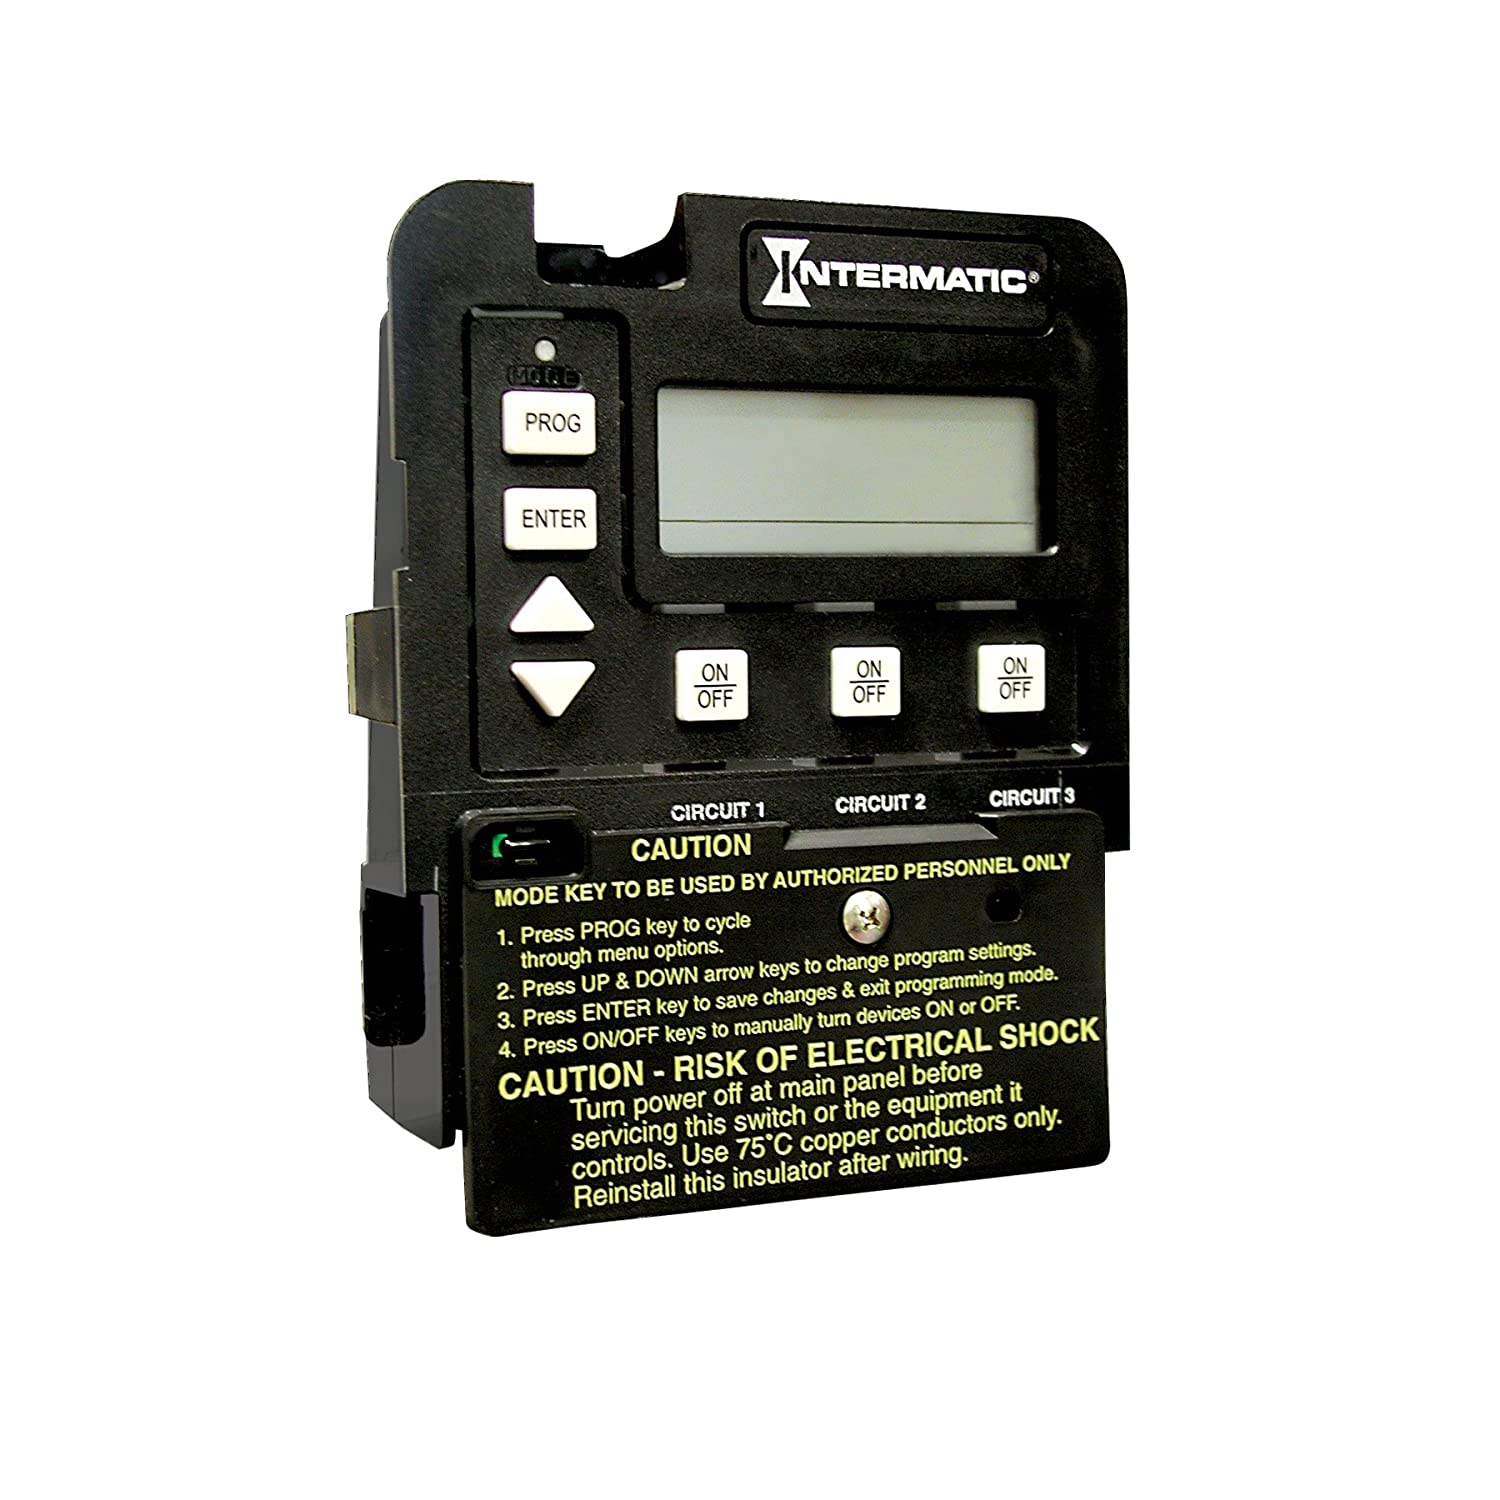 Intermatic P1353ME 3-Circuit Pool/Spa Digital Time Switch - Wall ...